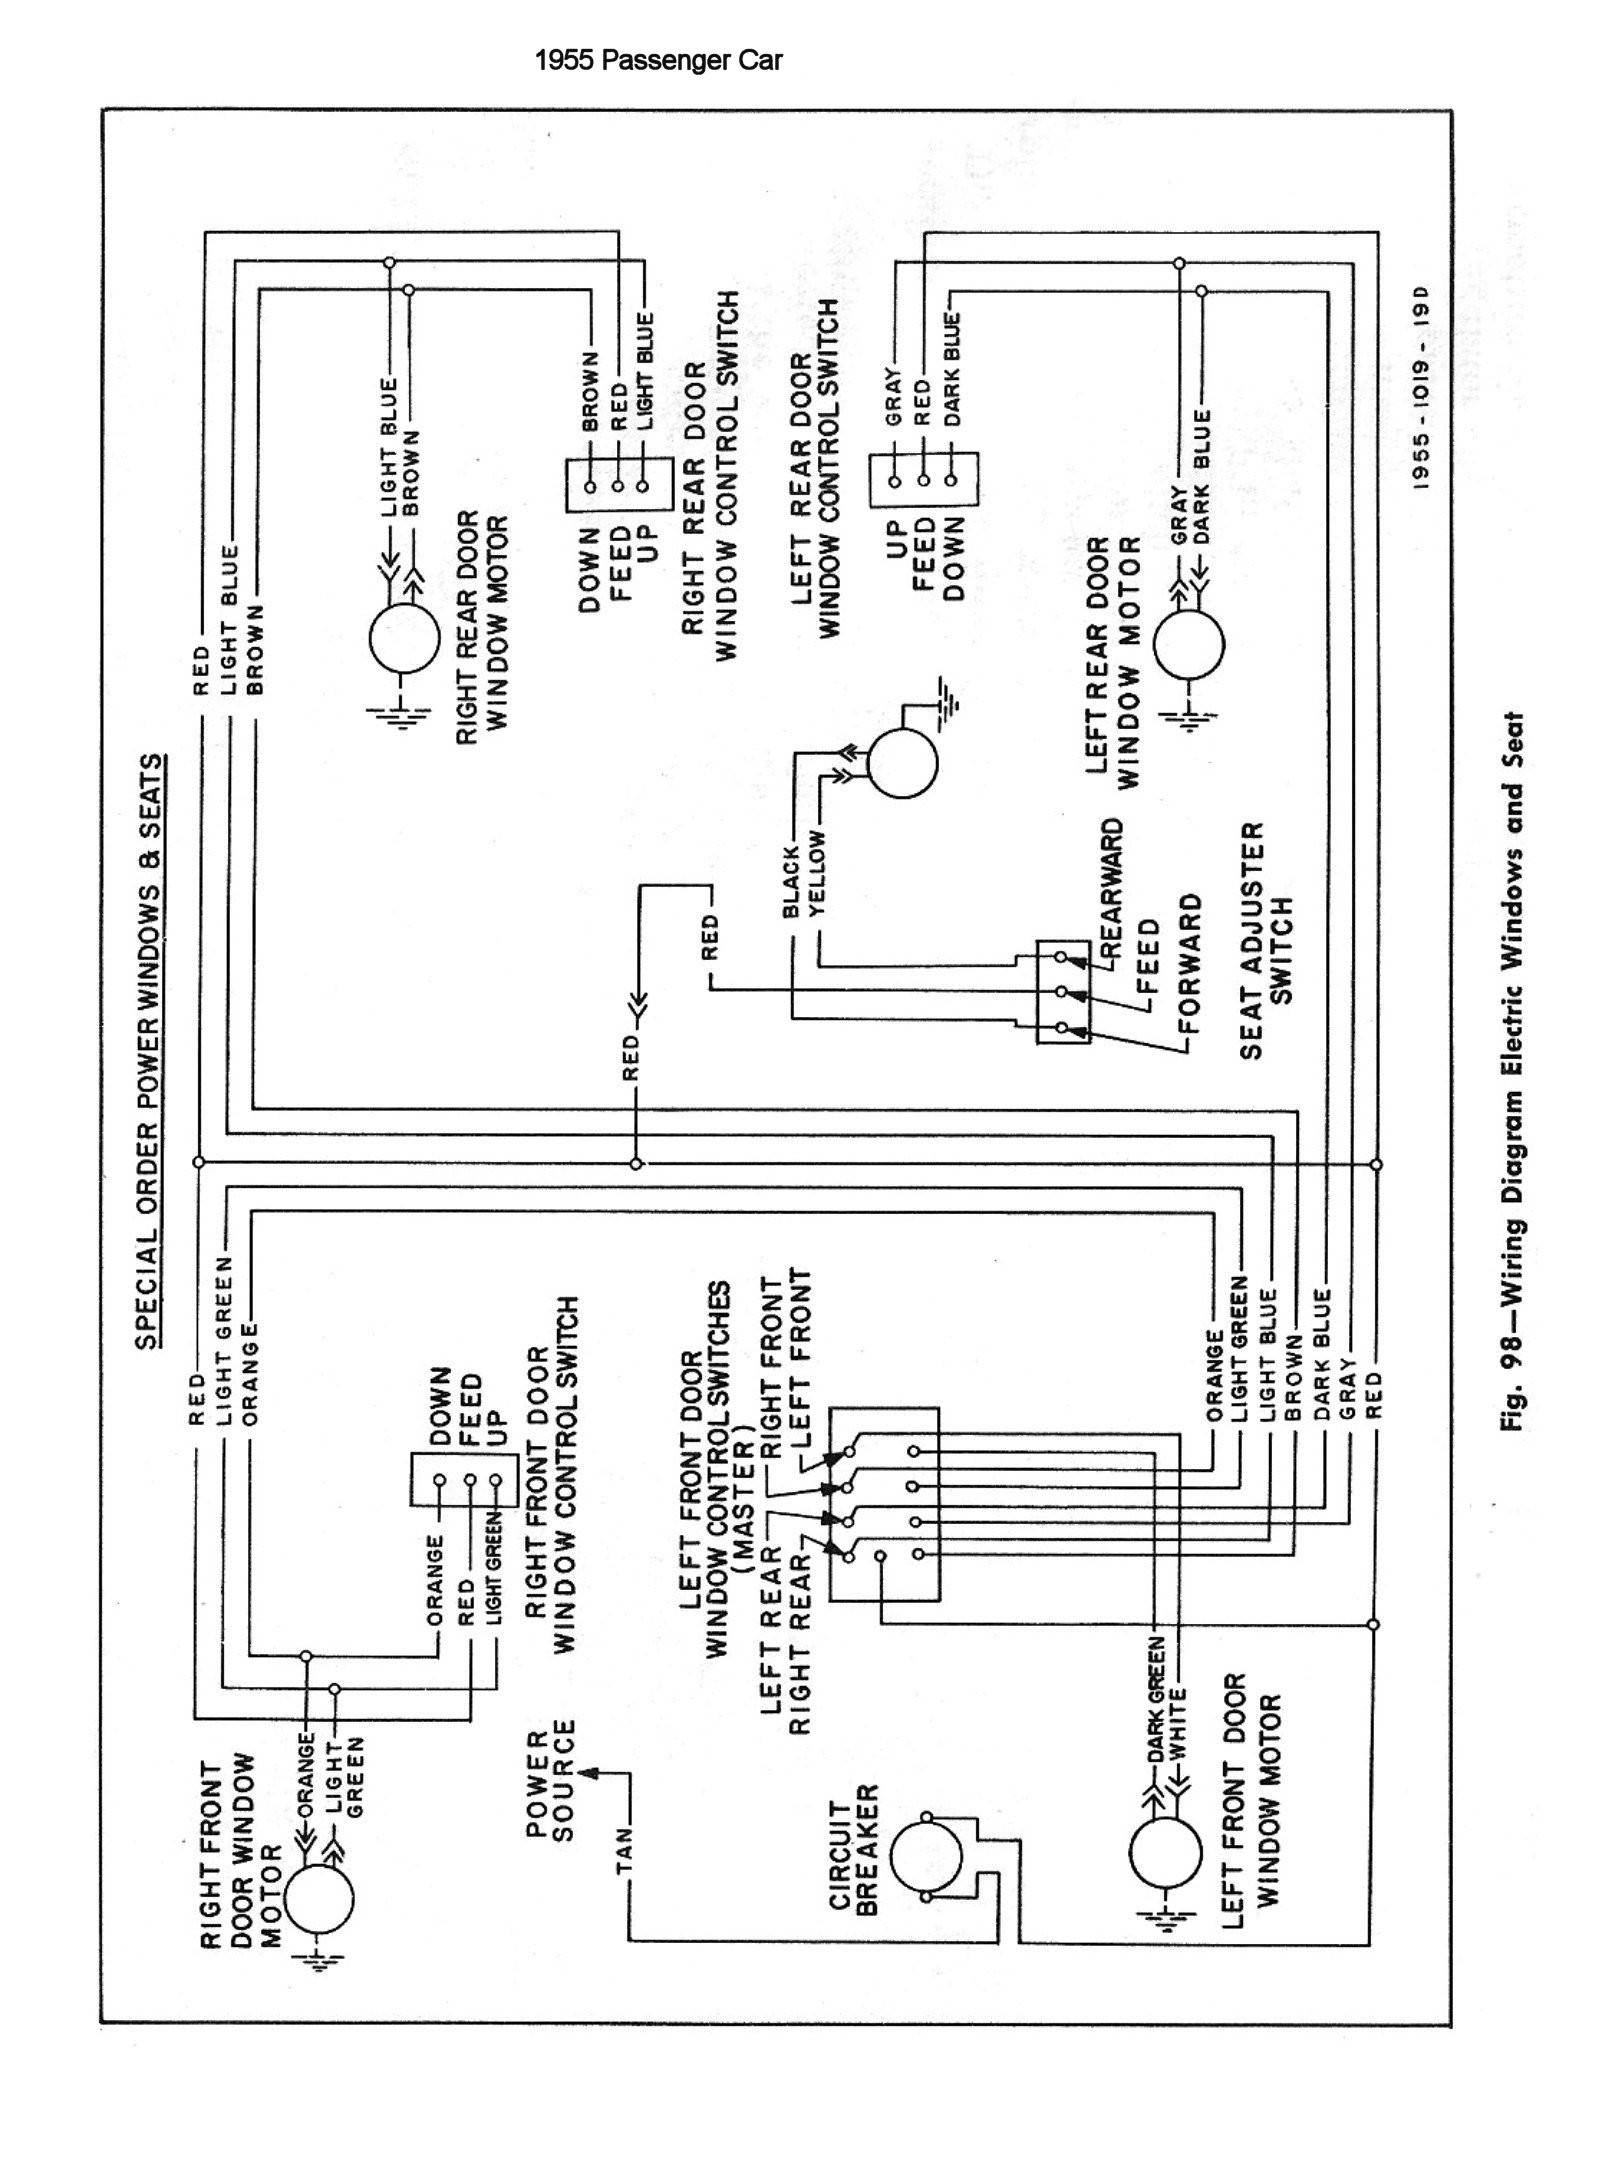 Wiring Diagram For A 1969 Chevrolet C10 Wiring Library